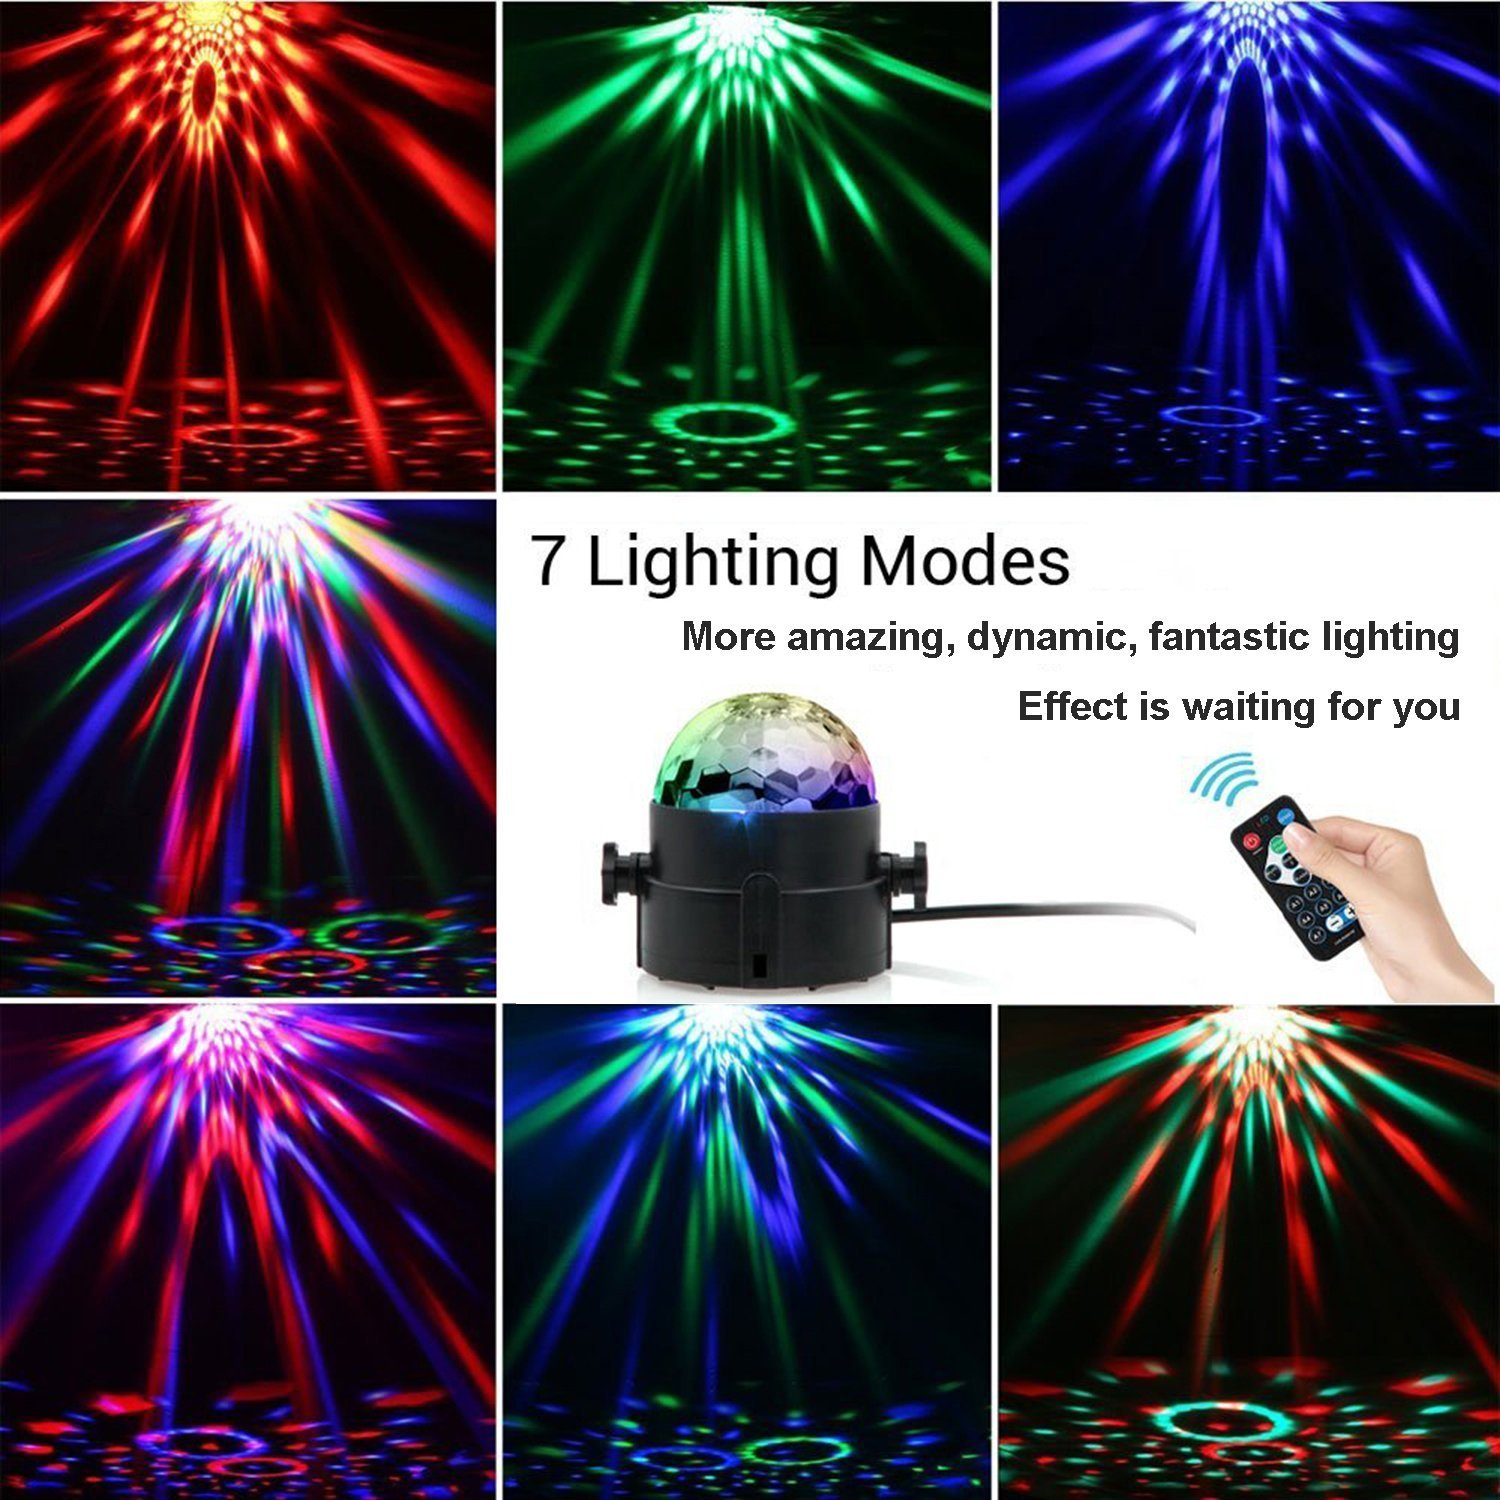 [Upgraded]DJ light Sound Activated Party Lights Disco Ball, Renoliss Strobe Club lights Effect Magic Mini Led Stage Lights For Christmas Home KTV Xmas Wedding Show Pub - RGB 3W 7Color